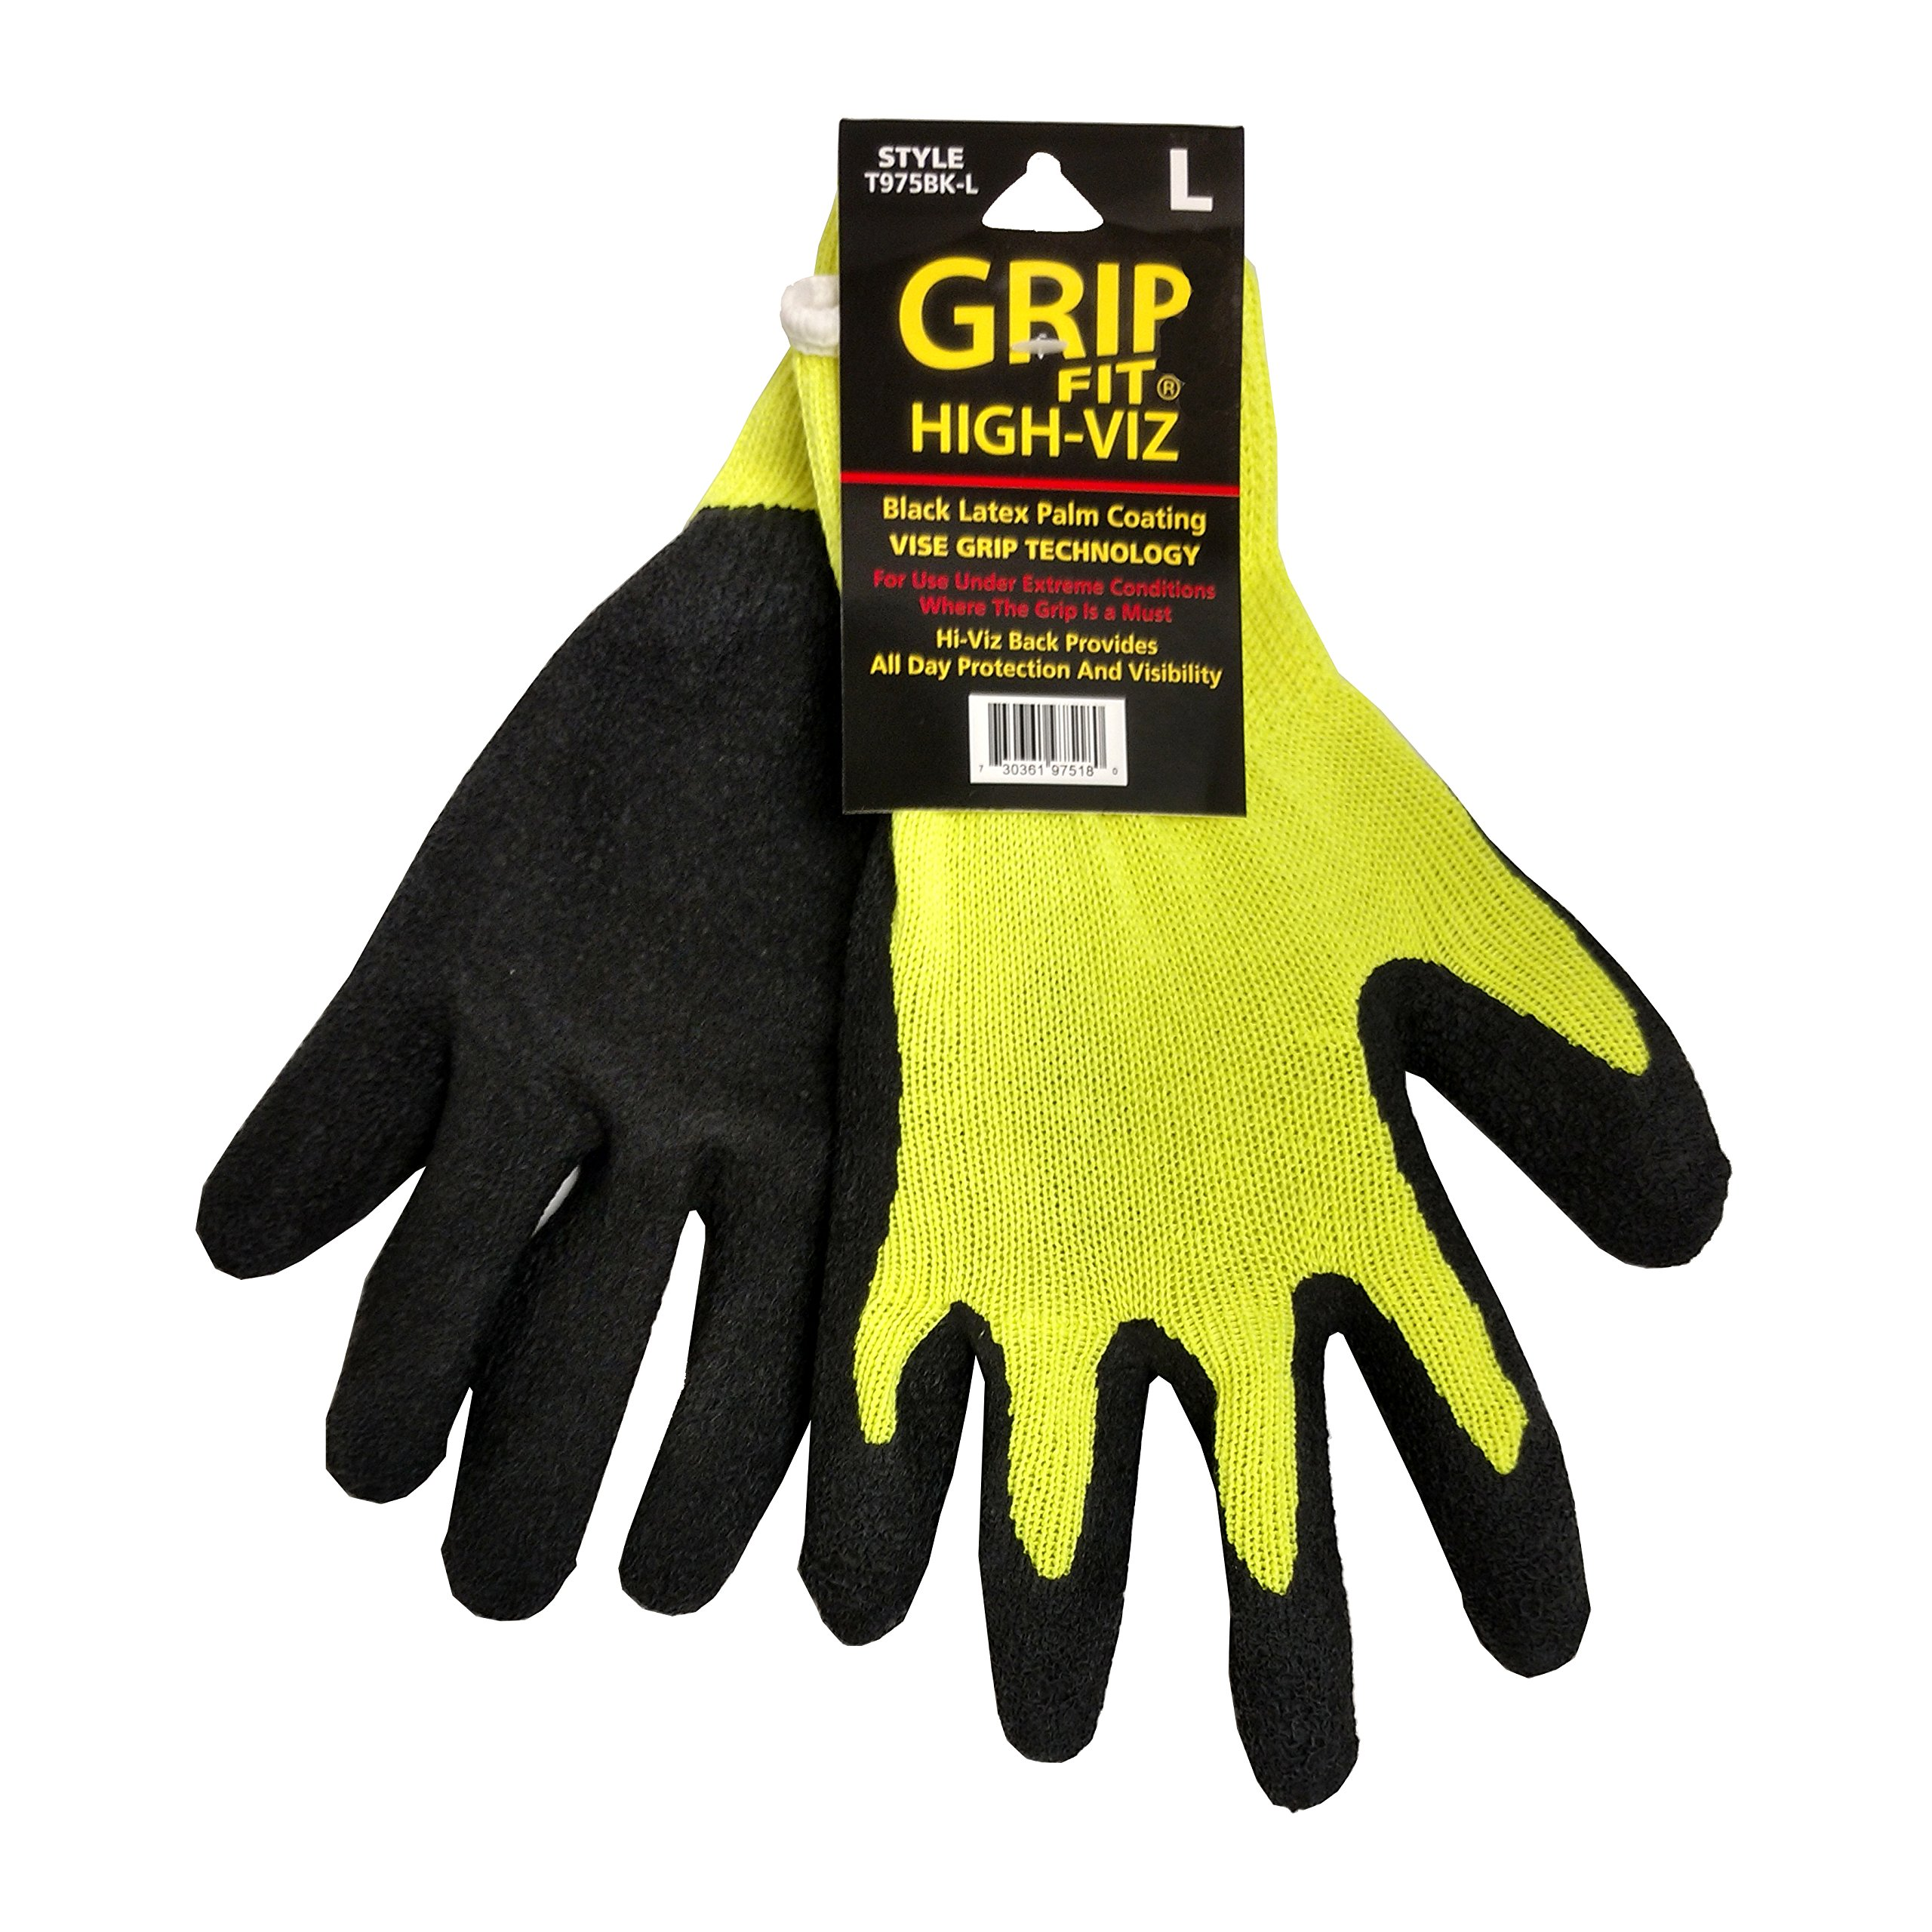 Knit Glove Rubber Coated Hi-Viz Knit Glove, Case of 144 Pair, X-Large